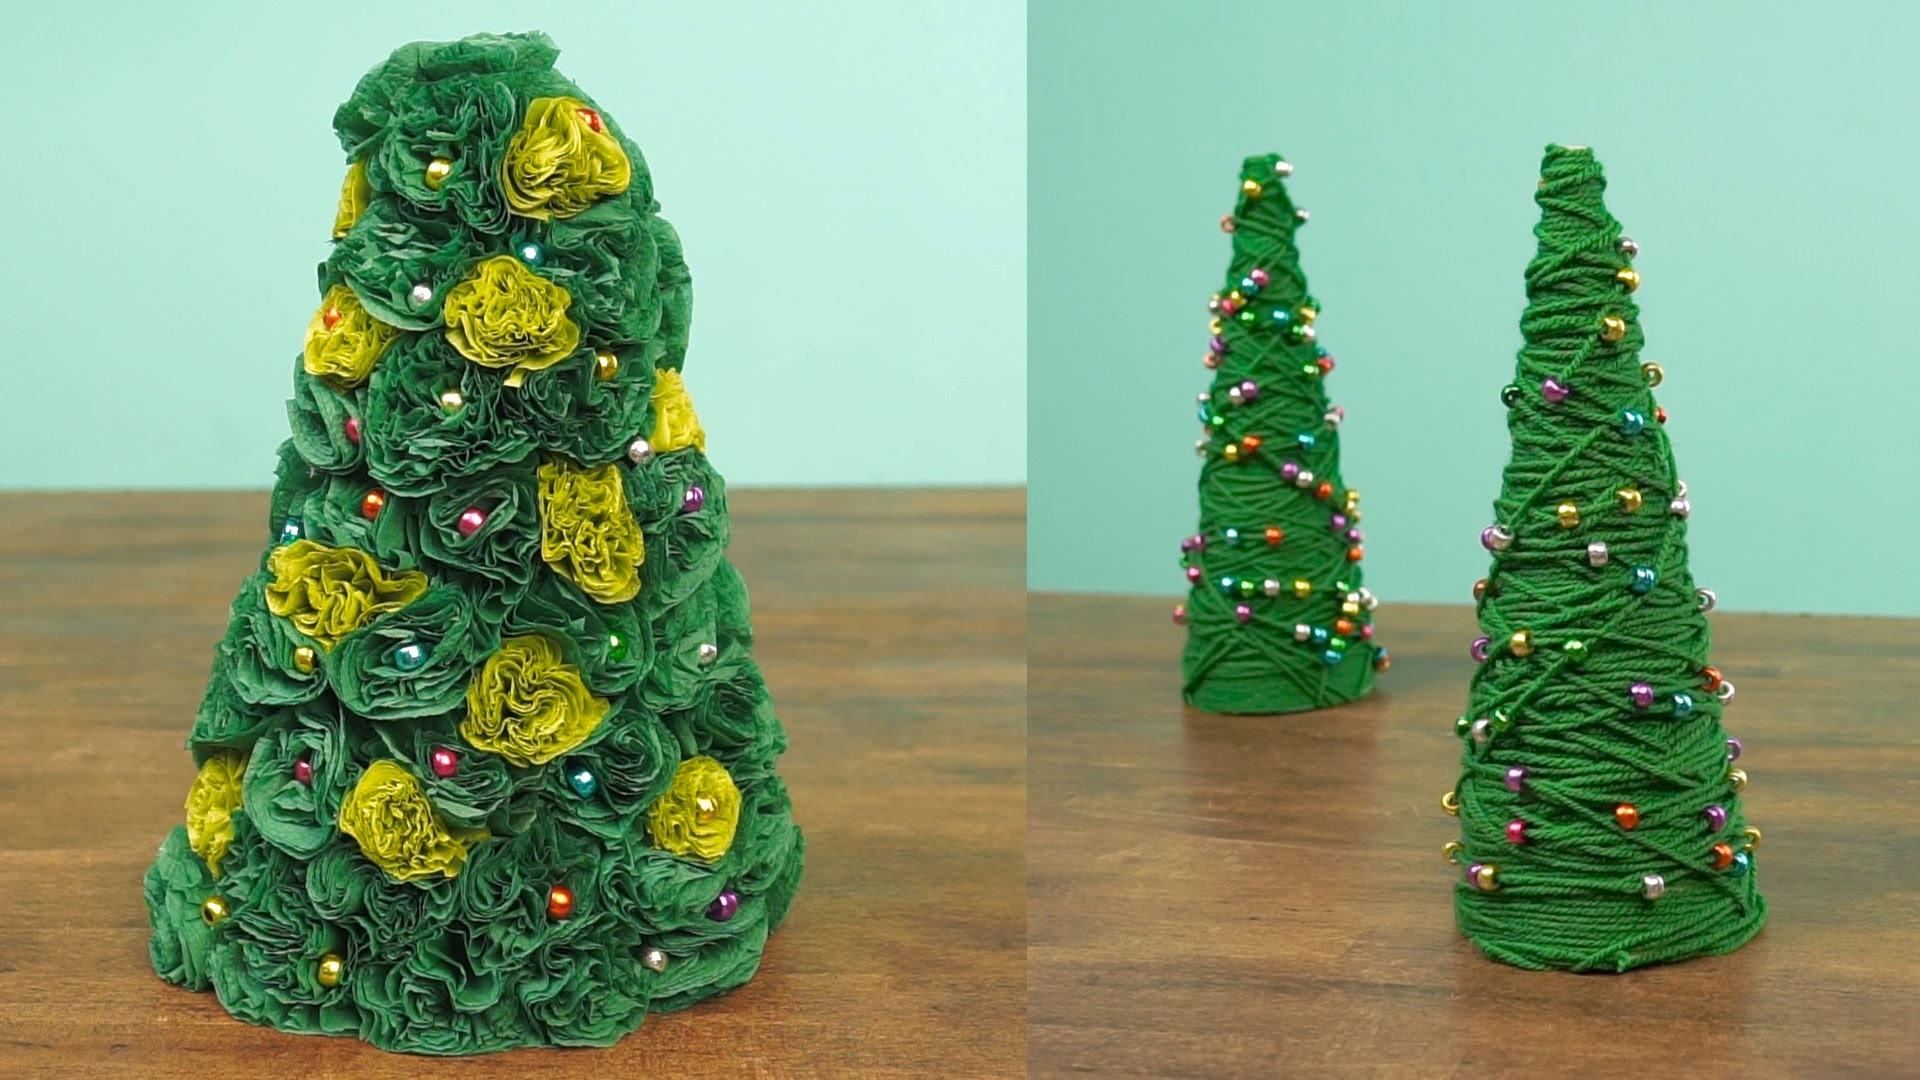 Miniature Christmas Tree Caft Diy Projects